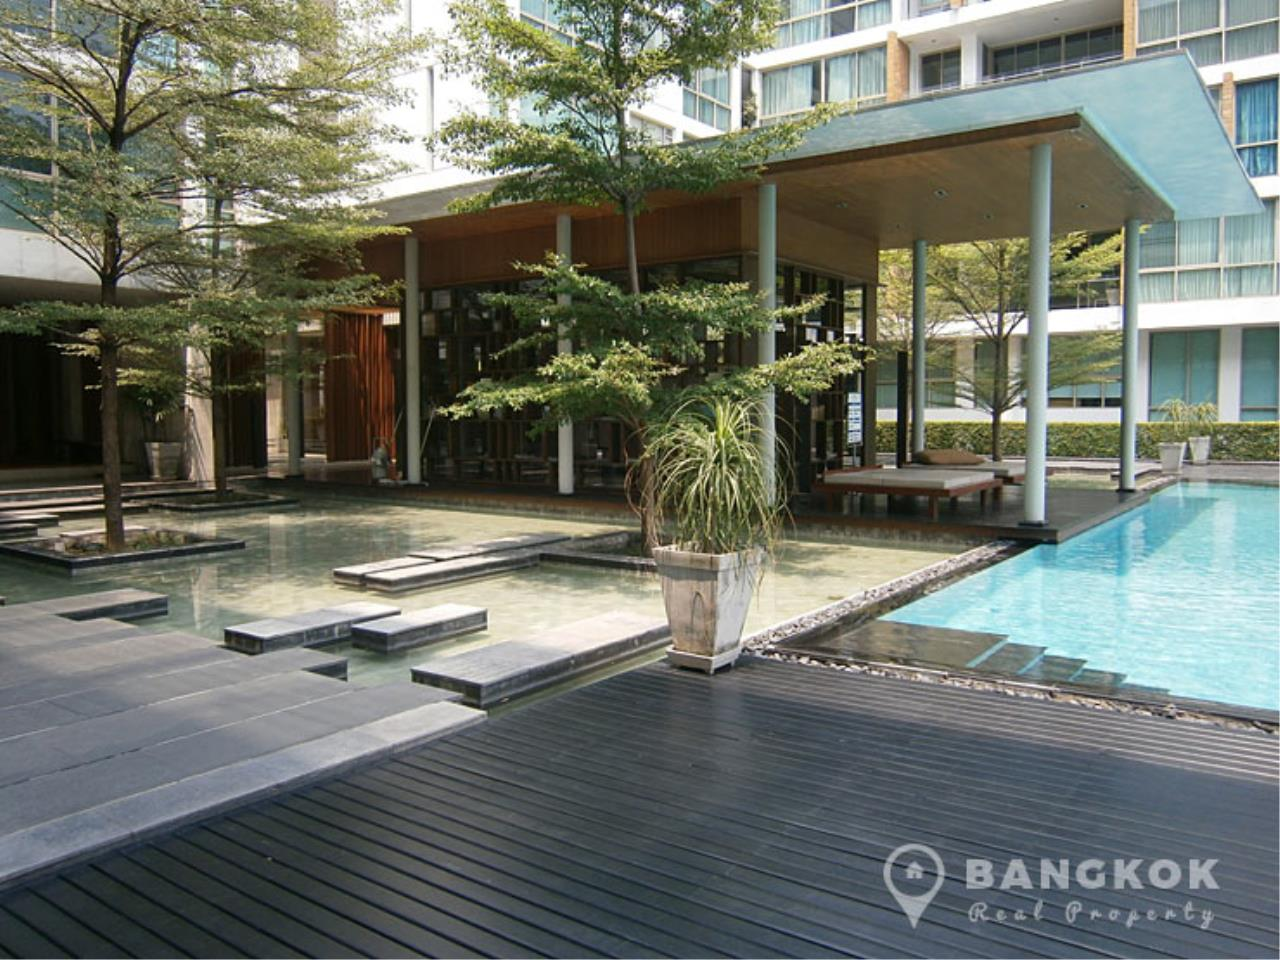 Bangkok Real Property Agency's Ficus Lane | A Fabulous Spacious 3 Bed 4 Bath Duplex near BTS 33